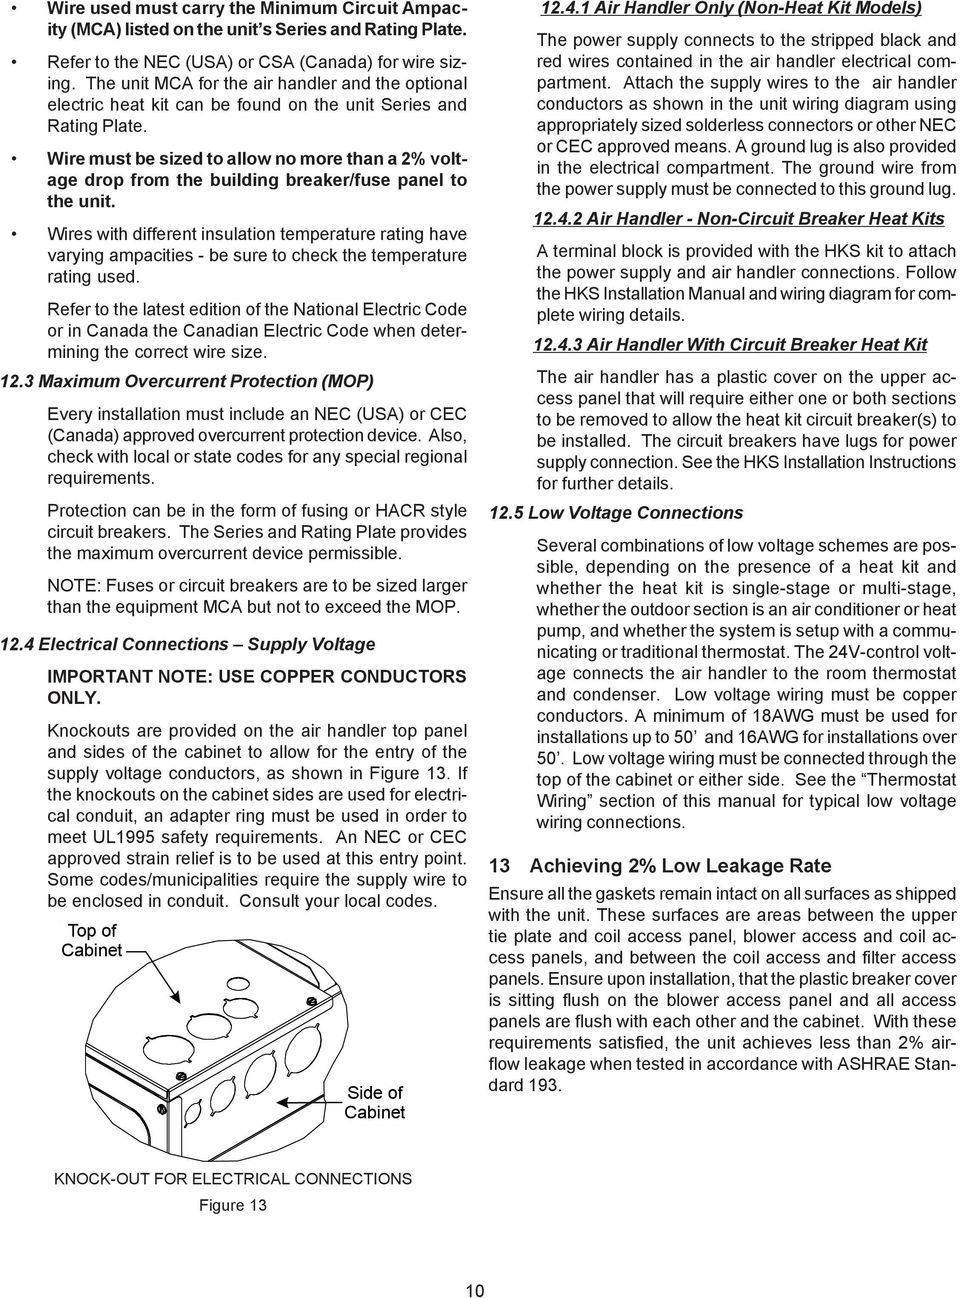 Avptc14 Air Handlers Installation Operating Instructions Pdf 2 Ton Goodman Heat Kit Wiring Diagram Wire Must Be Sized To Allow No More Than A Voltage Drop From The Building